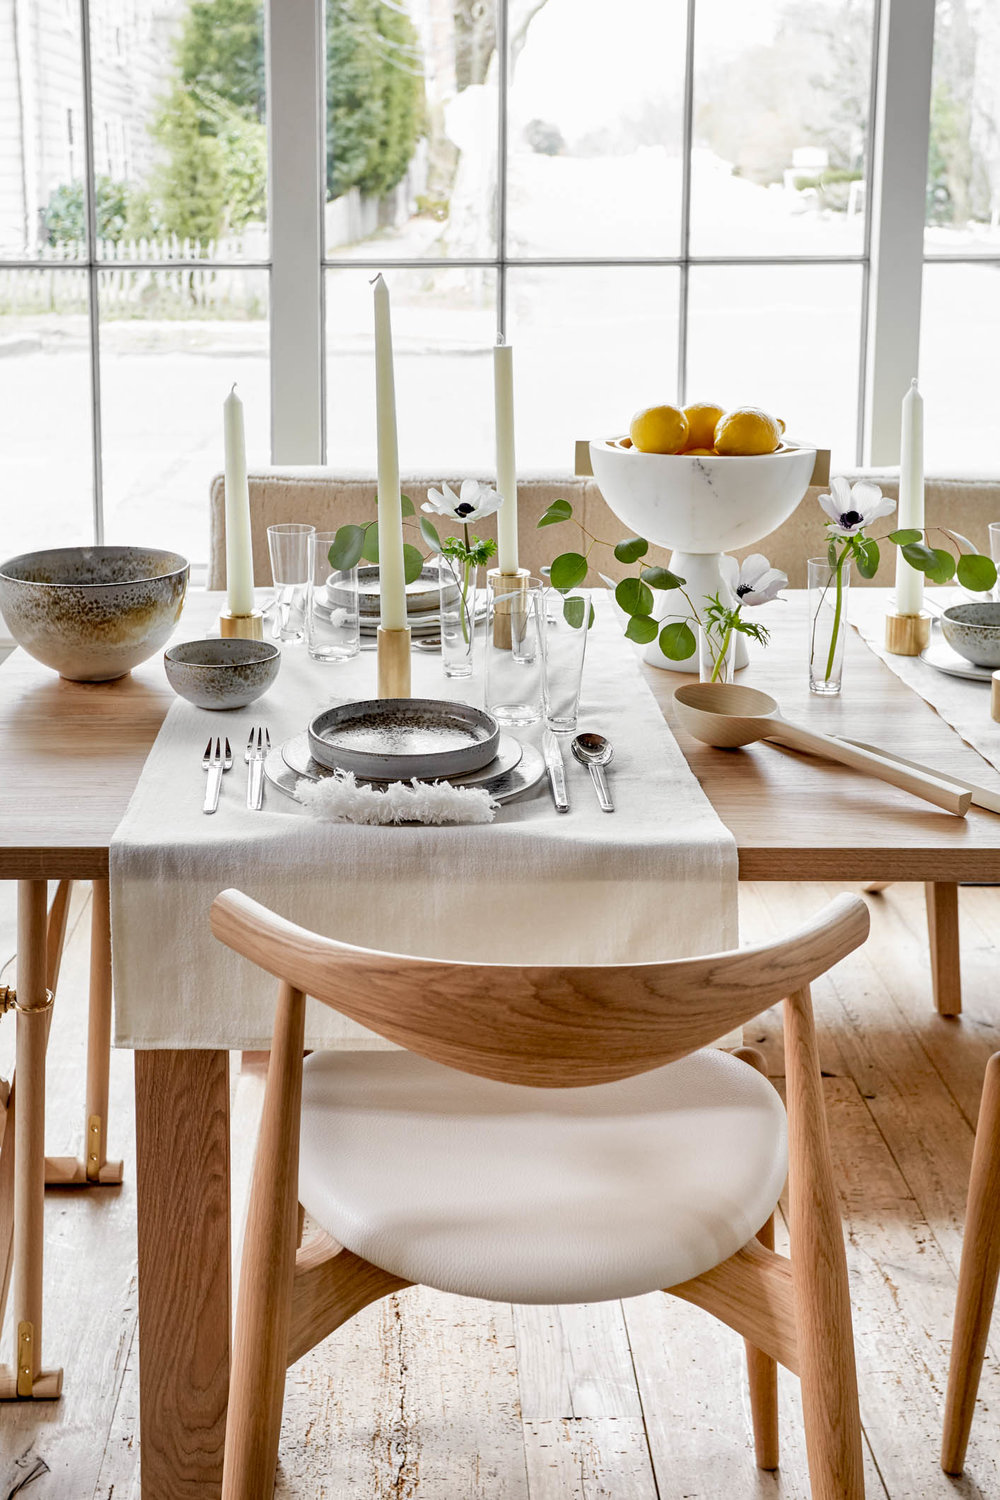 spring-tablesetting-hamptons-ny.jpg